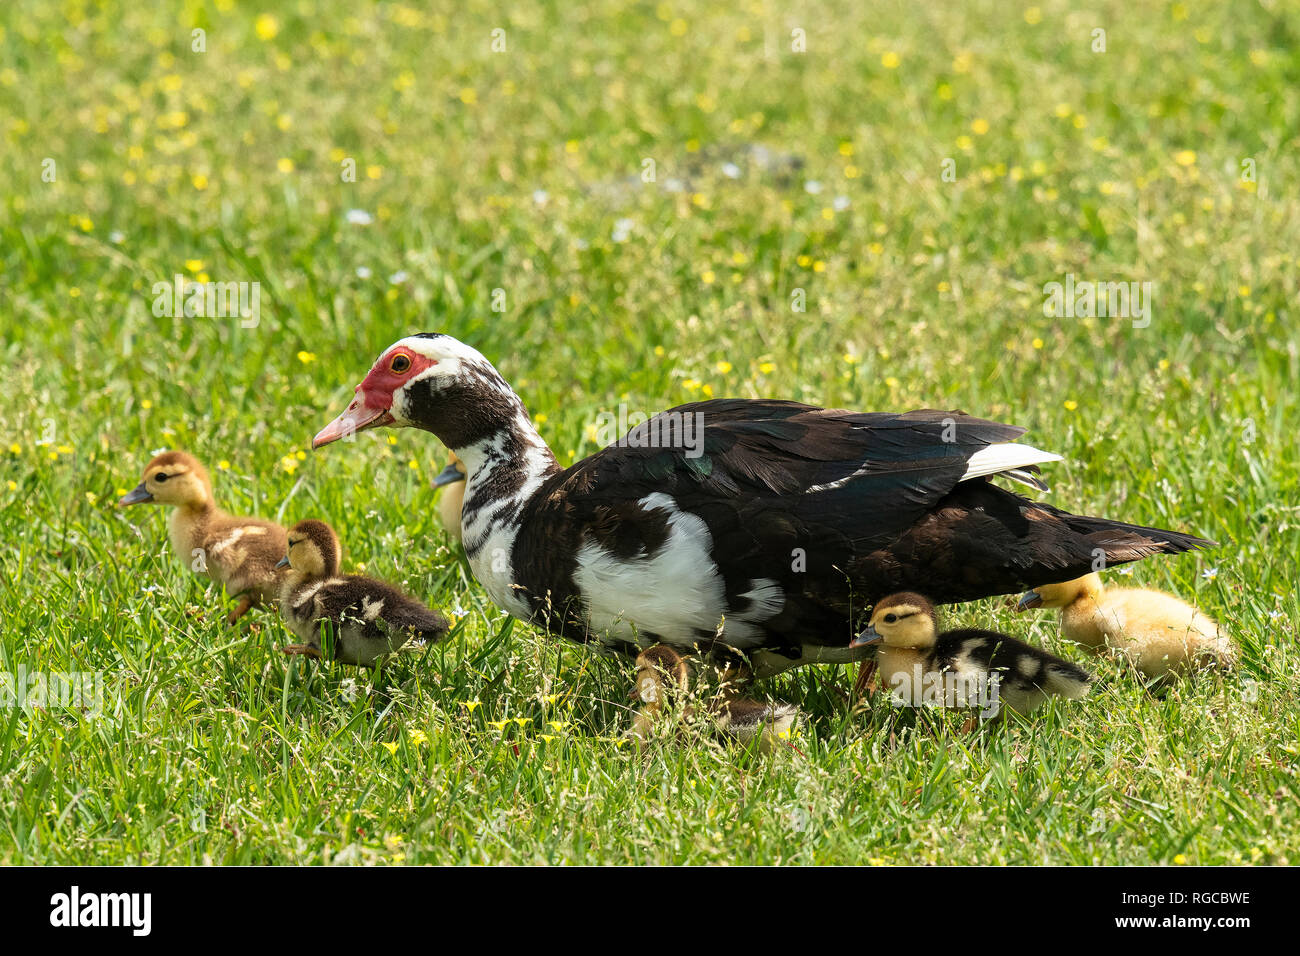 Female Muscovy Duck Stock Photos & Female Muscovy Duck Stock